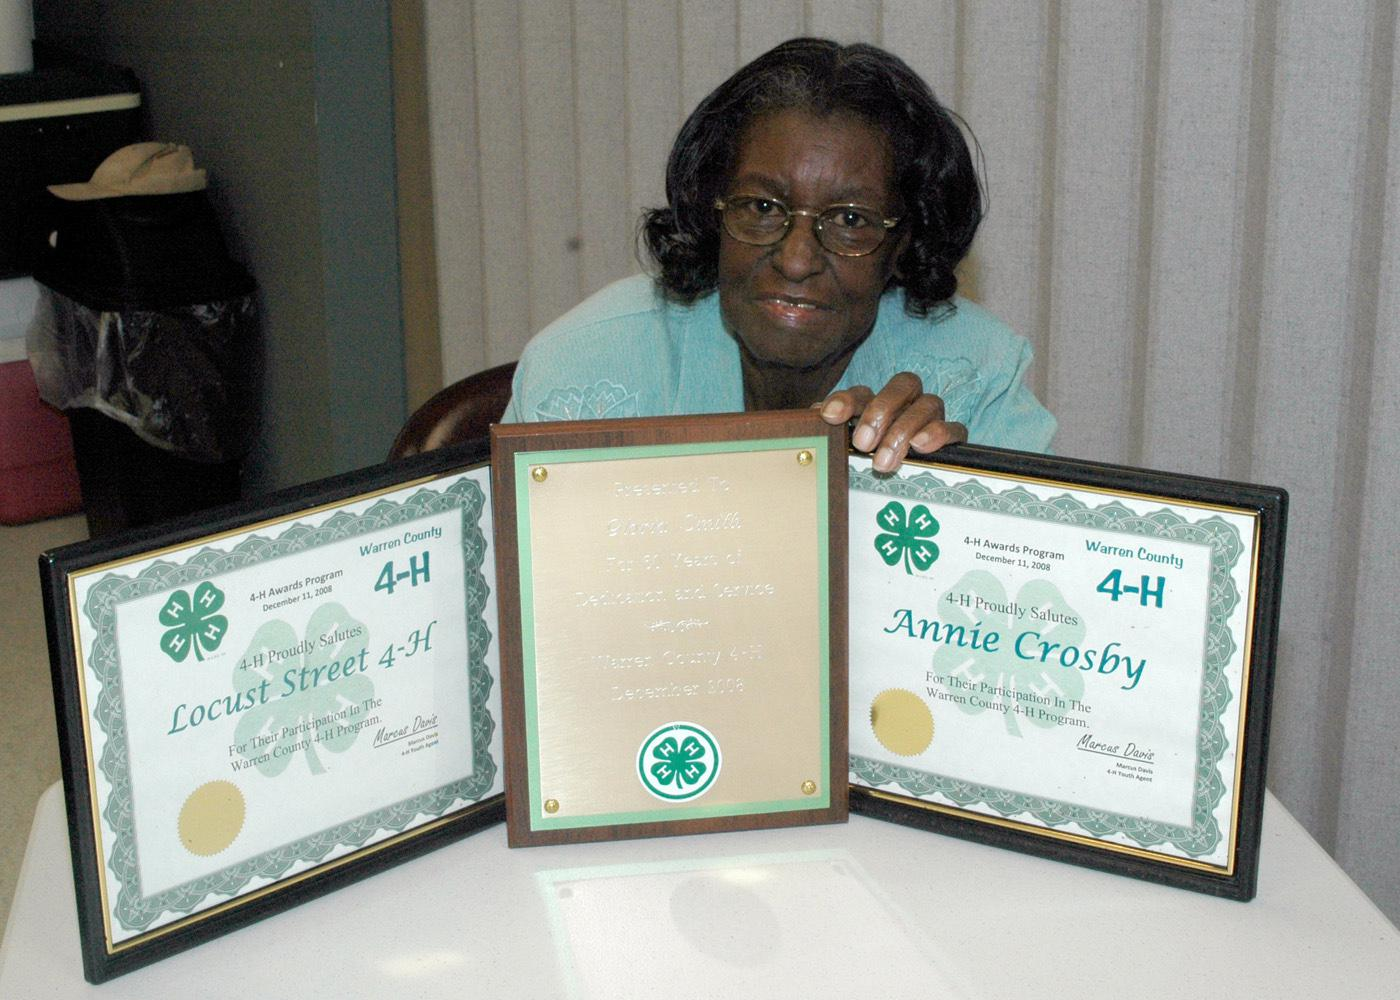 Longtime Warren County 4-H club leader Gloria Smith displays certificates she received from the state 4-H program and the Mississippi Volunteer Leaders Association for her service to youth. (Photo by Patti Drapala)